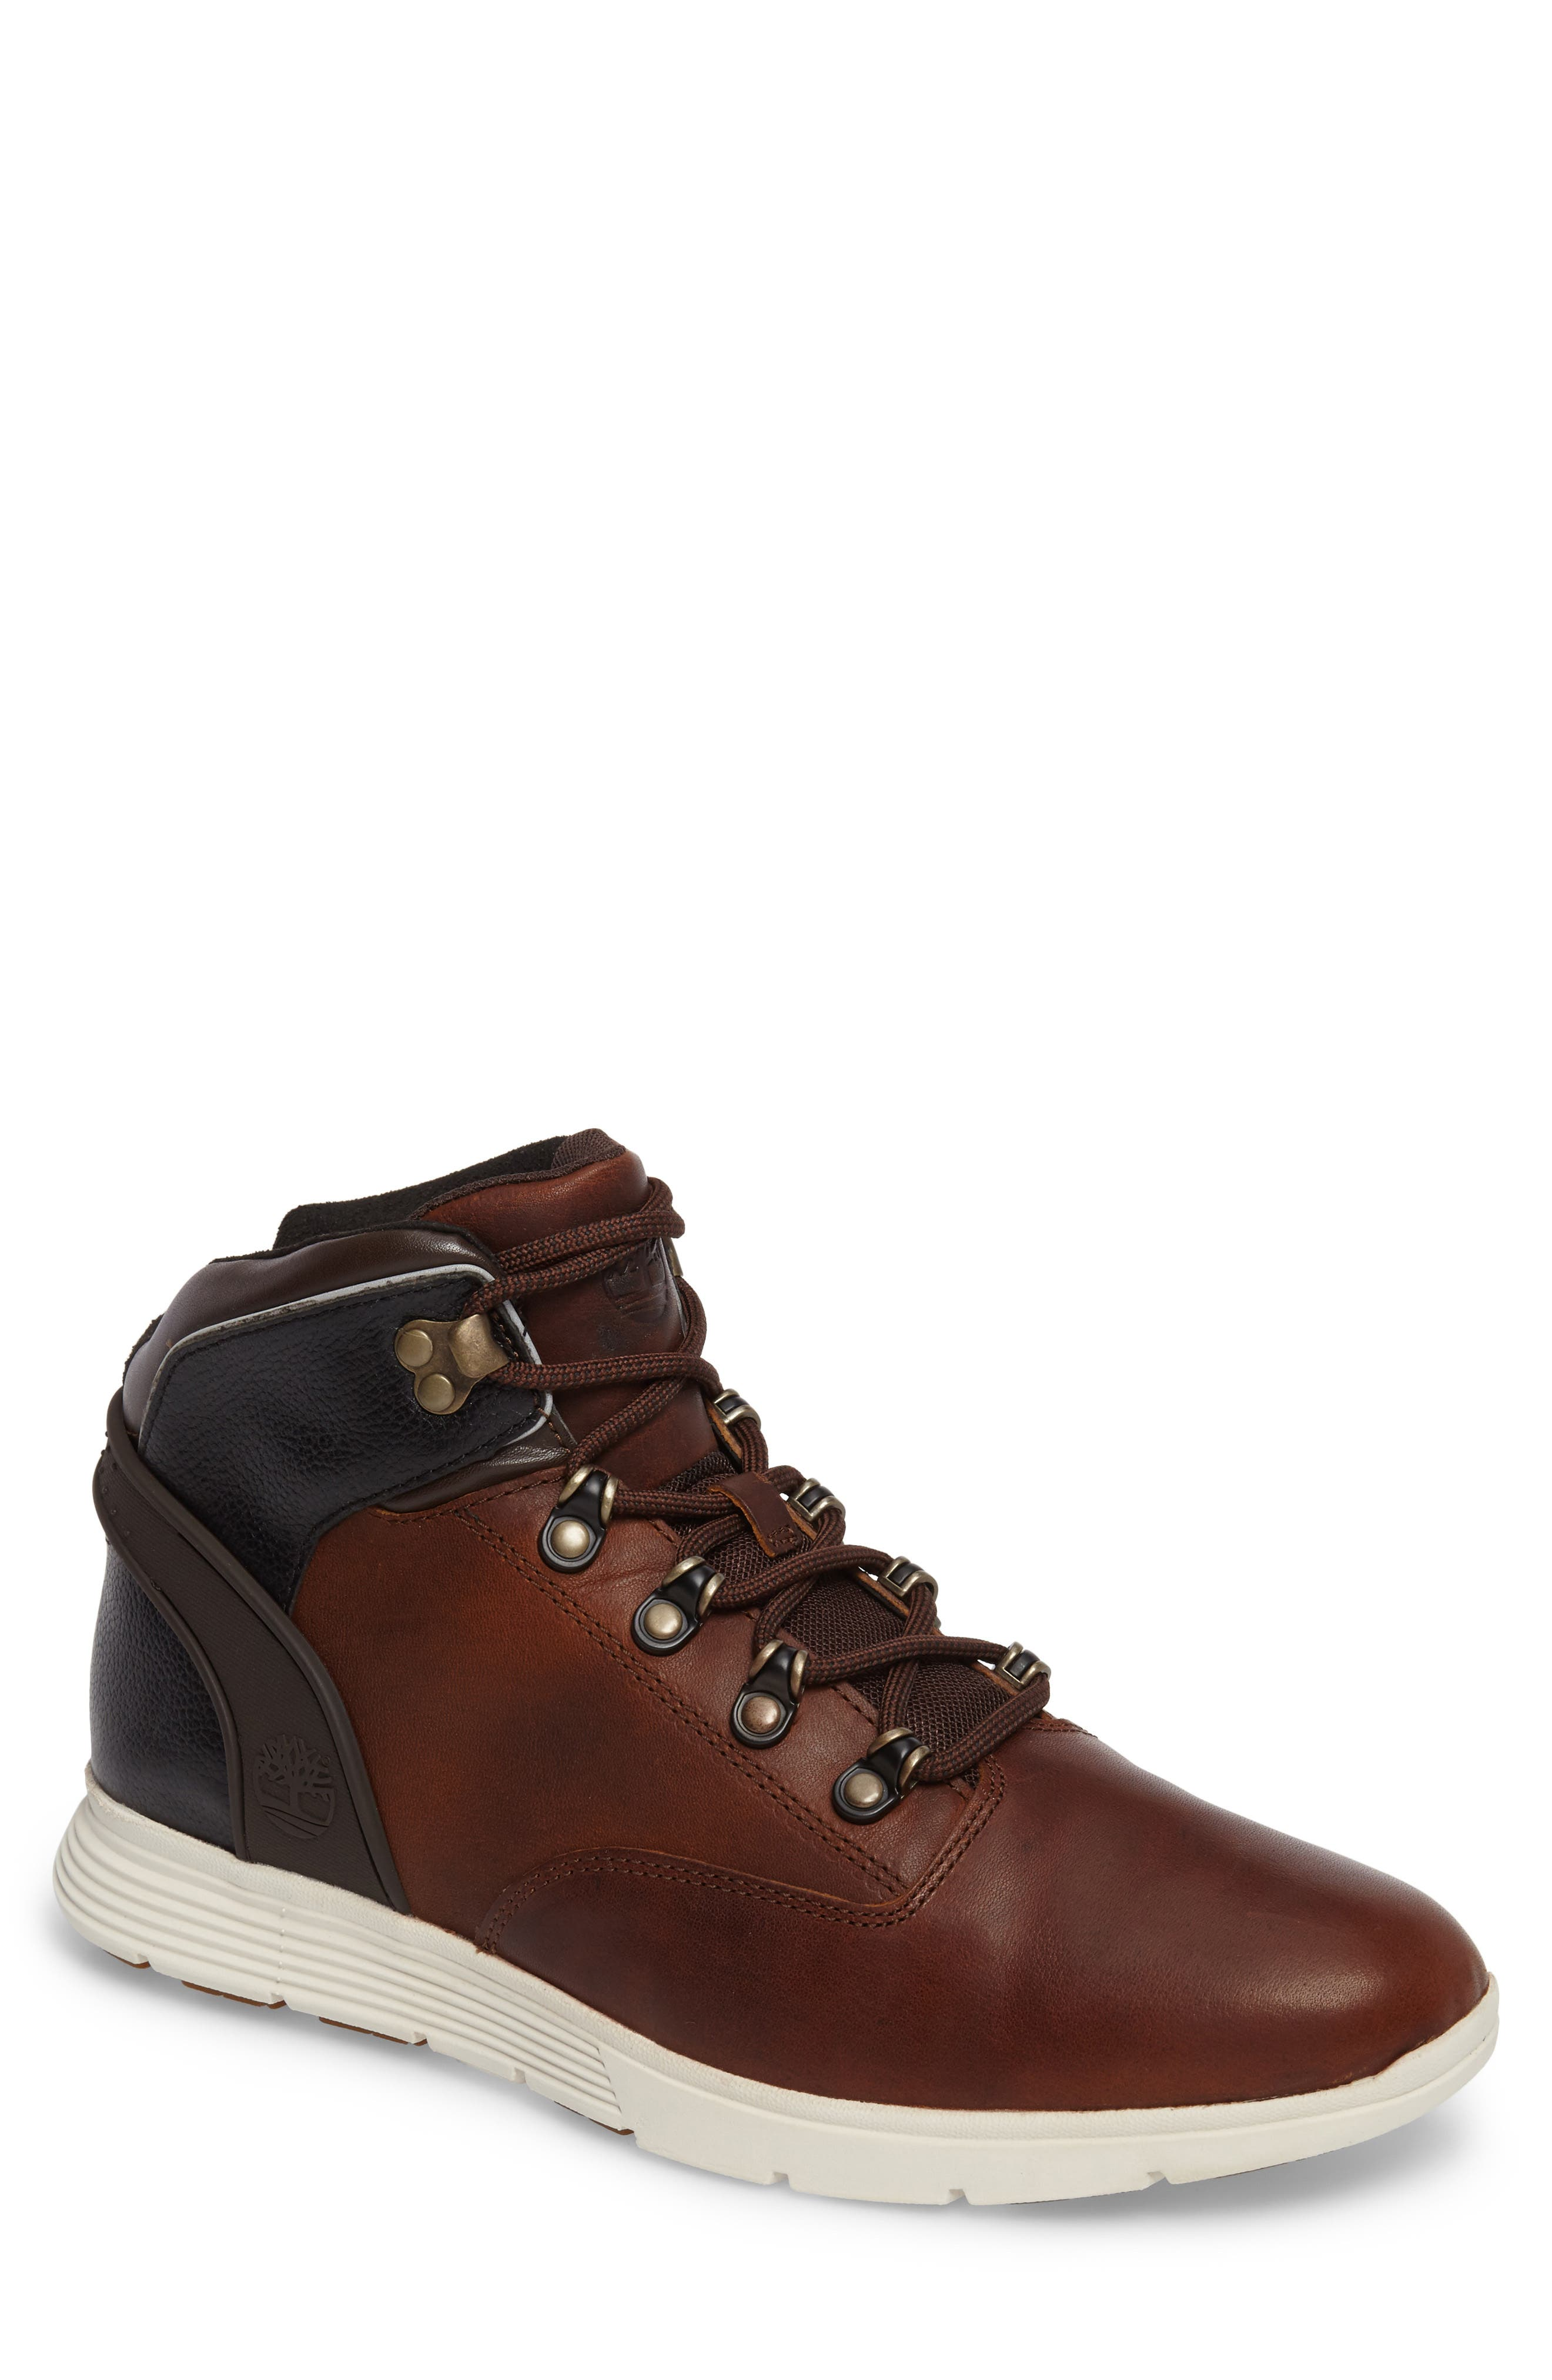 Timberland Killington Hiker Chukka Boot (Men)